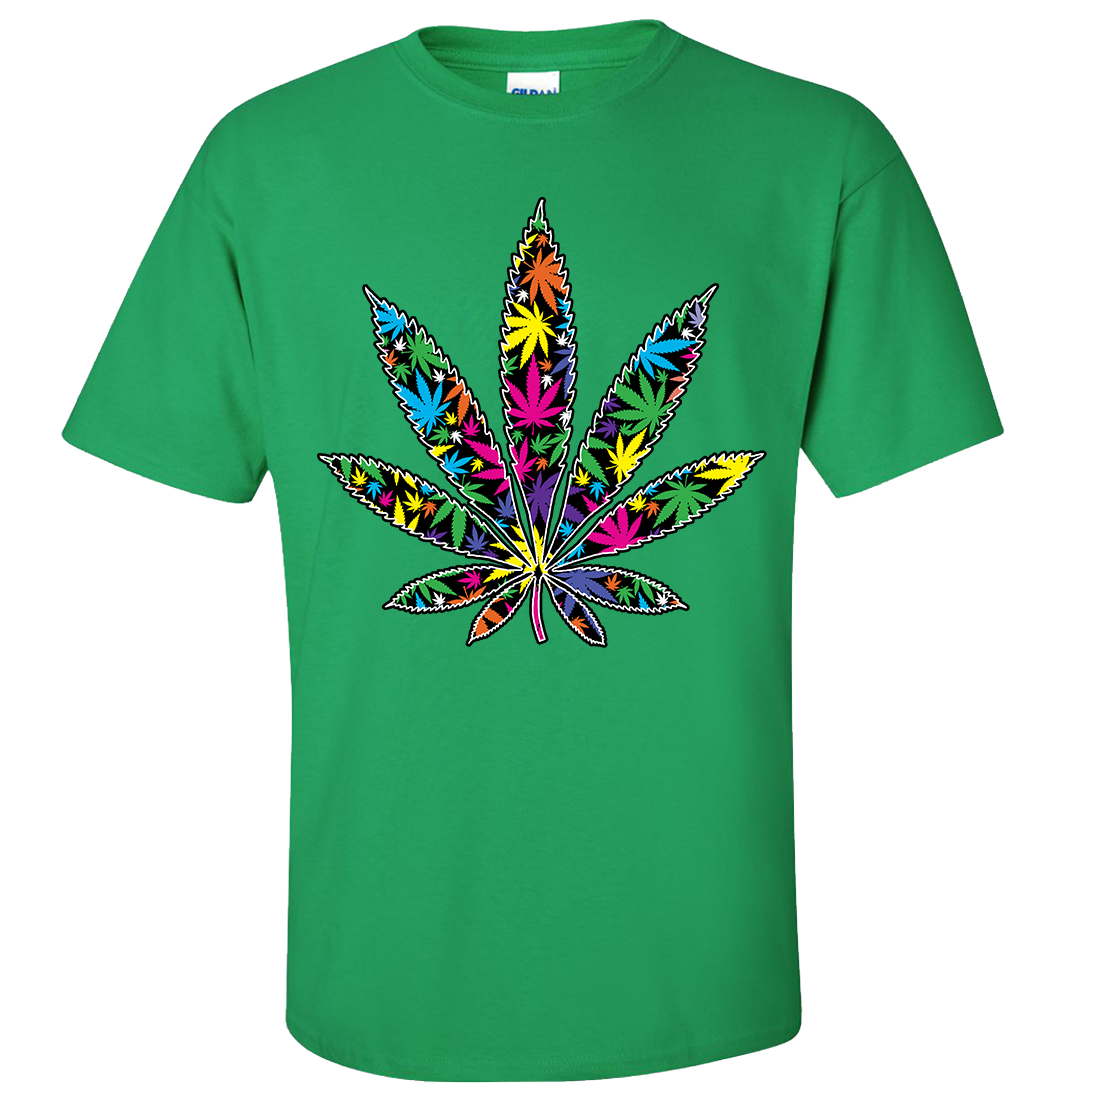 Neon party pot leaf asst colors t shirt tee ebay for Neon coloured t shirts